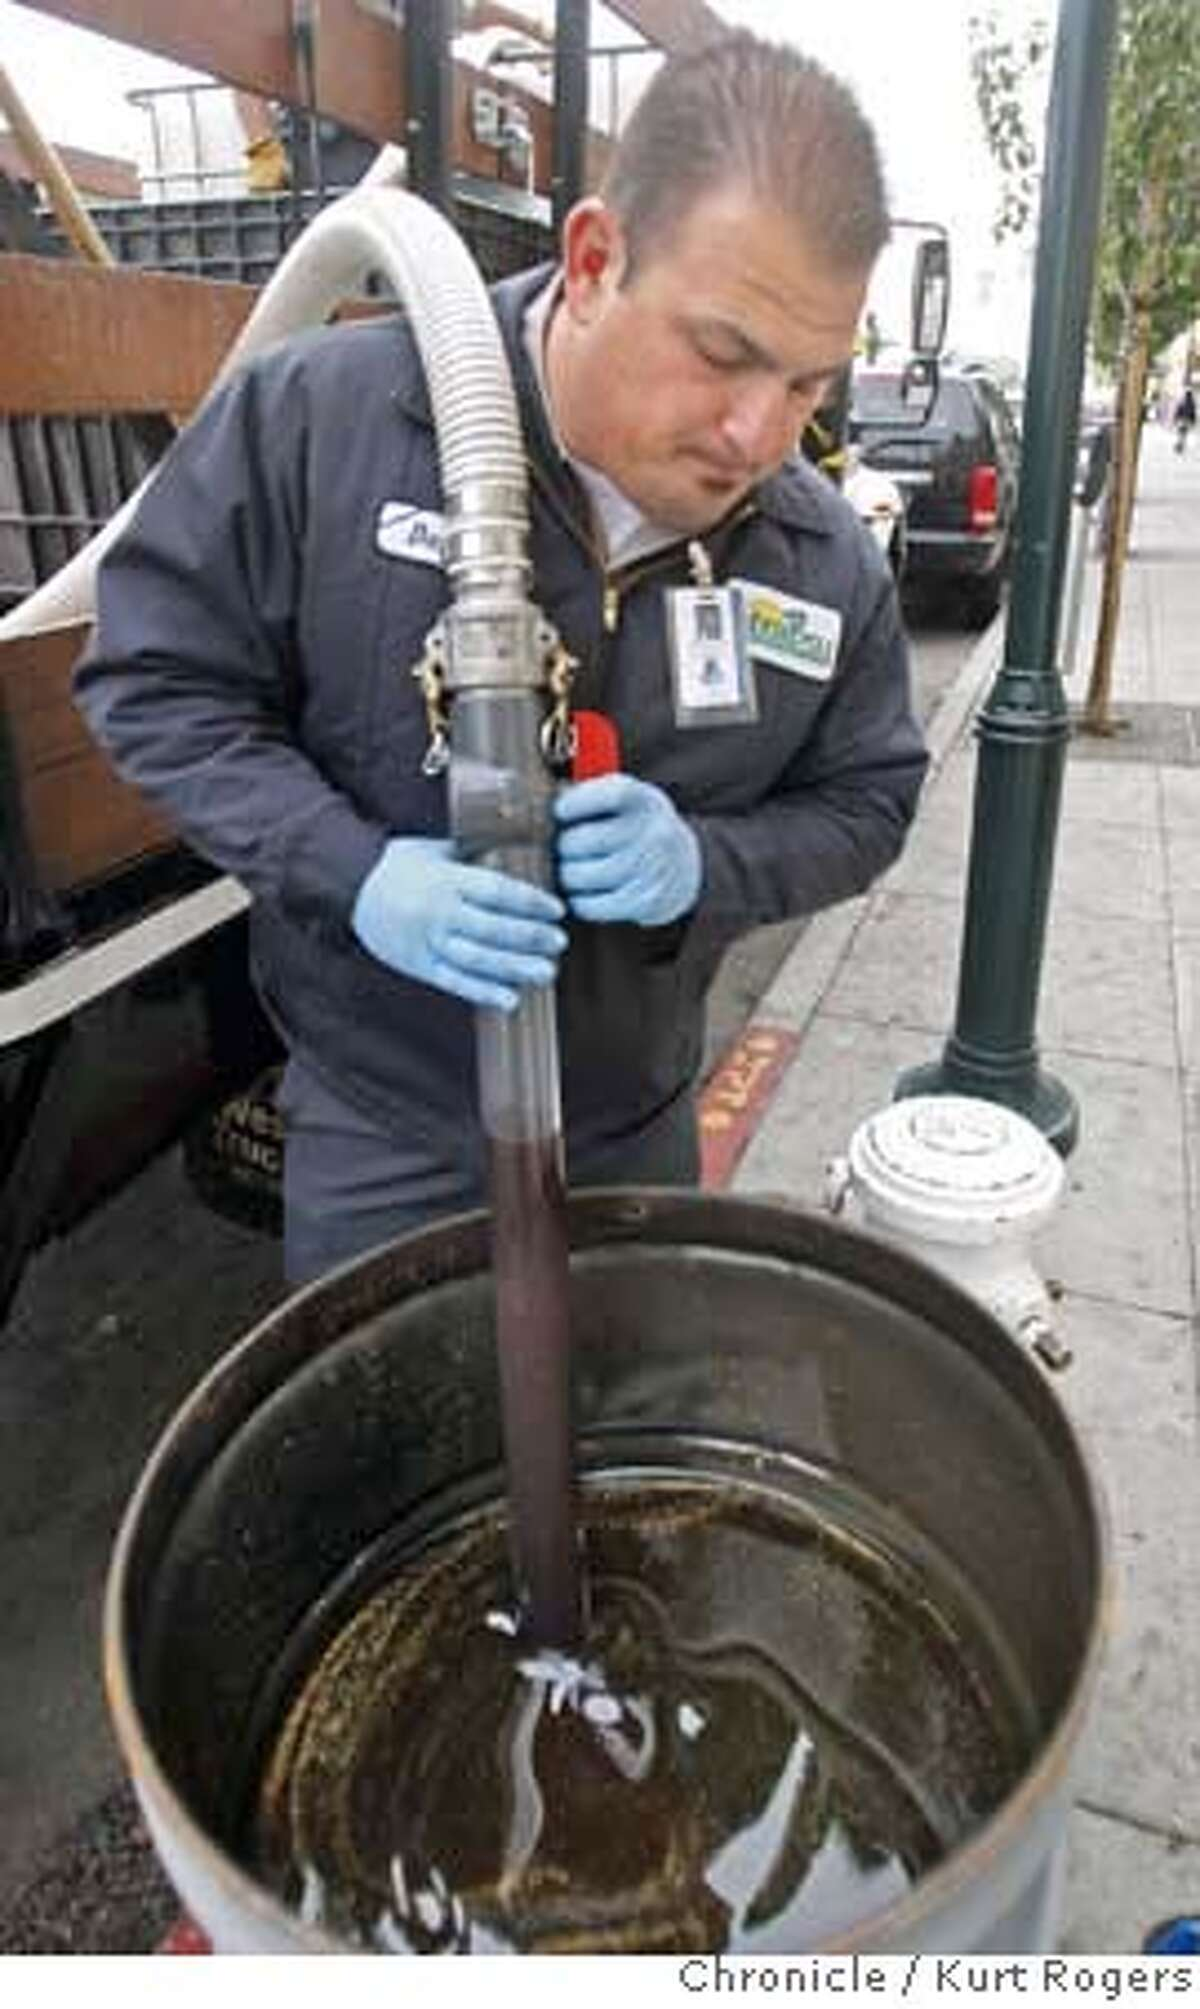 David Silvestri (cq) pumps out a fifty gallon drum of used oil taken out of the kitchen at Olivia's as restaurant on 3rd street to be recycled into biodiesel. San Francisco has a new program to recycle restaurant grease and oil and turn it into biodiesel for city vehicles. GREASECYCLE20_0122_KR.jpg Kurt Rogers / The Chronicle Photo taken on 11/16/07, in San Francisco, CA, USA MANDATORY CREDIT FOR PHOTOG AND SAN FRANCISCO CHRONICLE/NO SALES-MAGS OUT